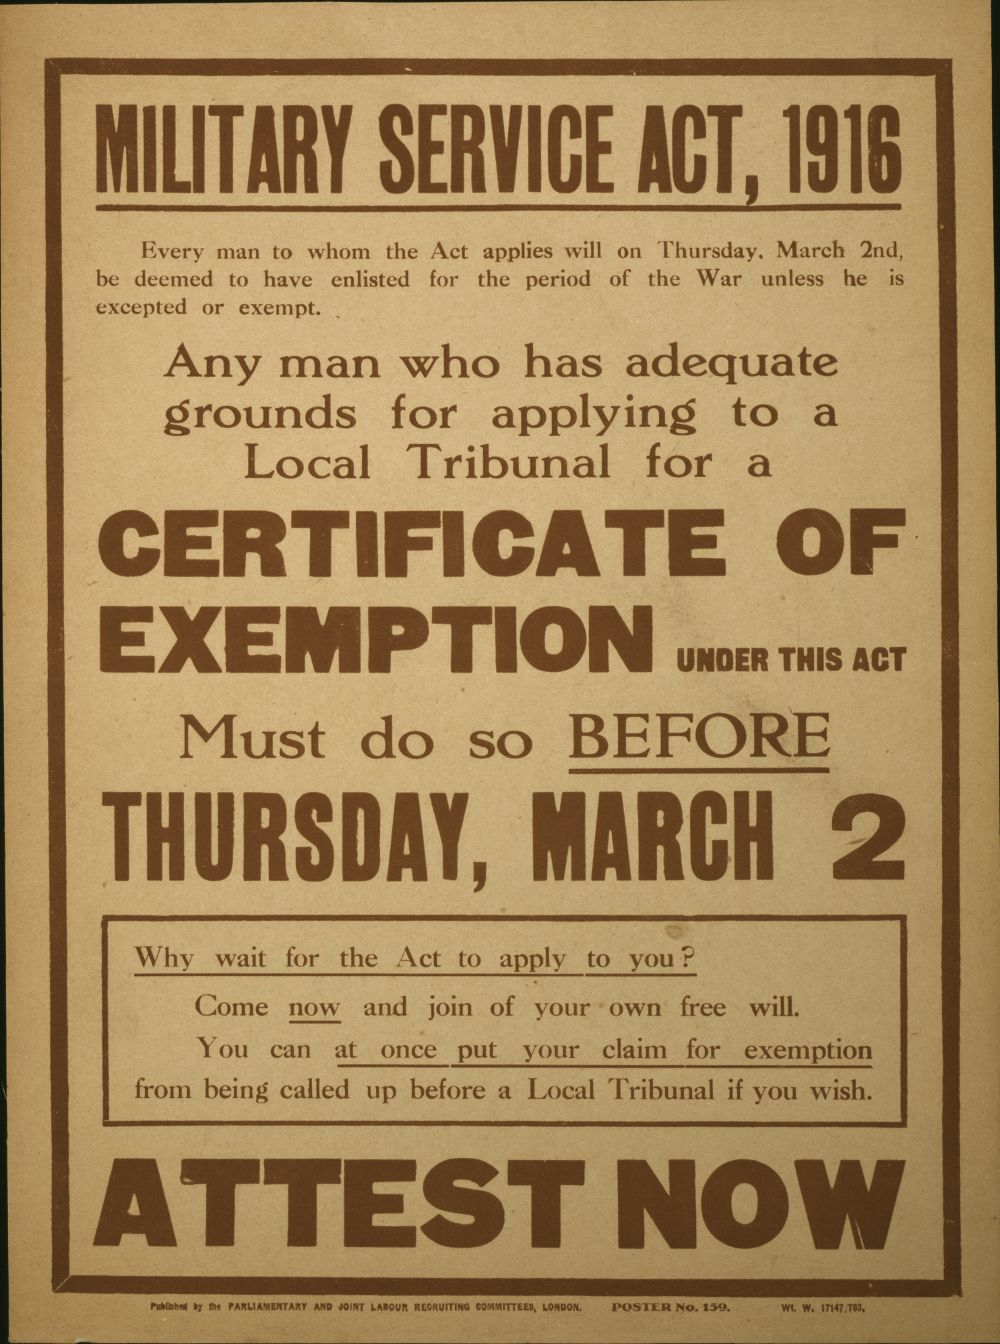 British conscription poster for the Military Service Act 1916